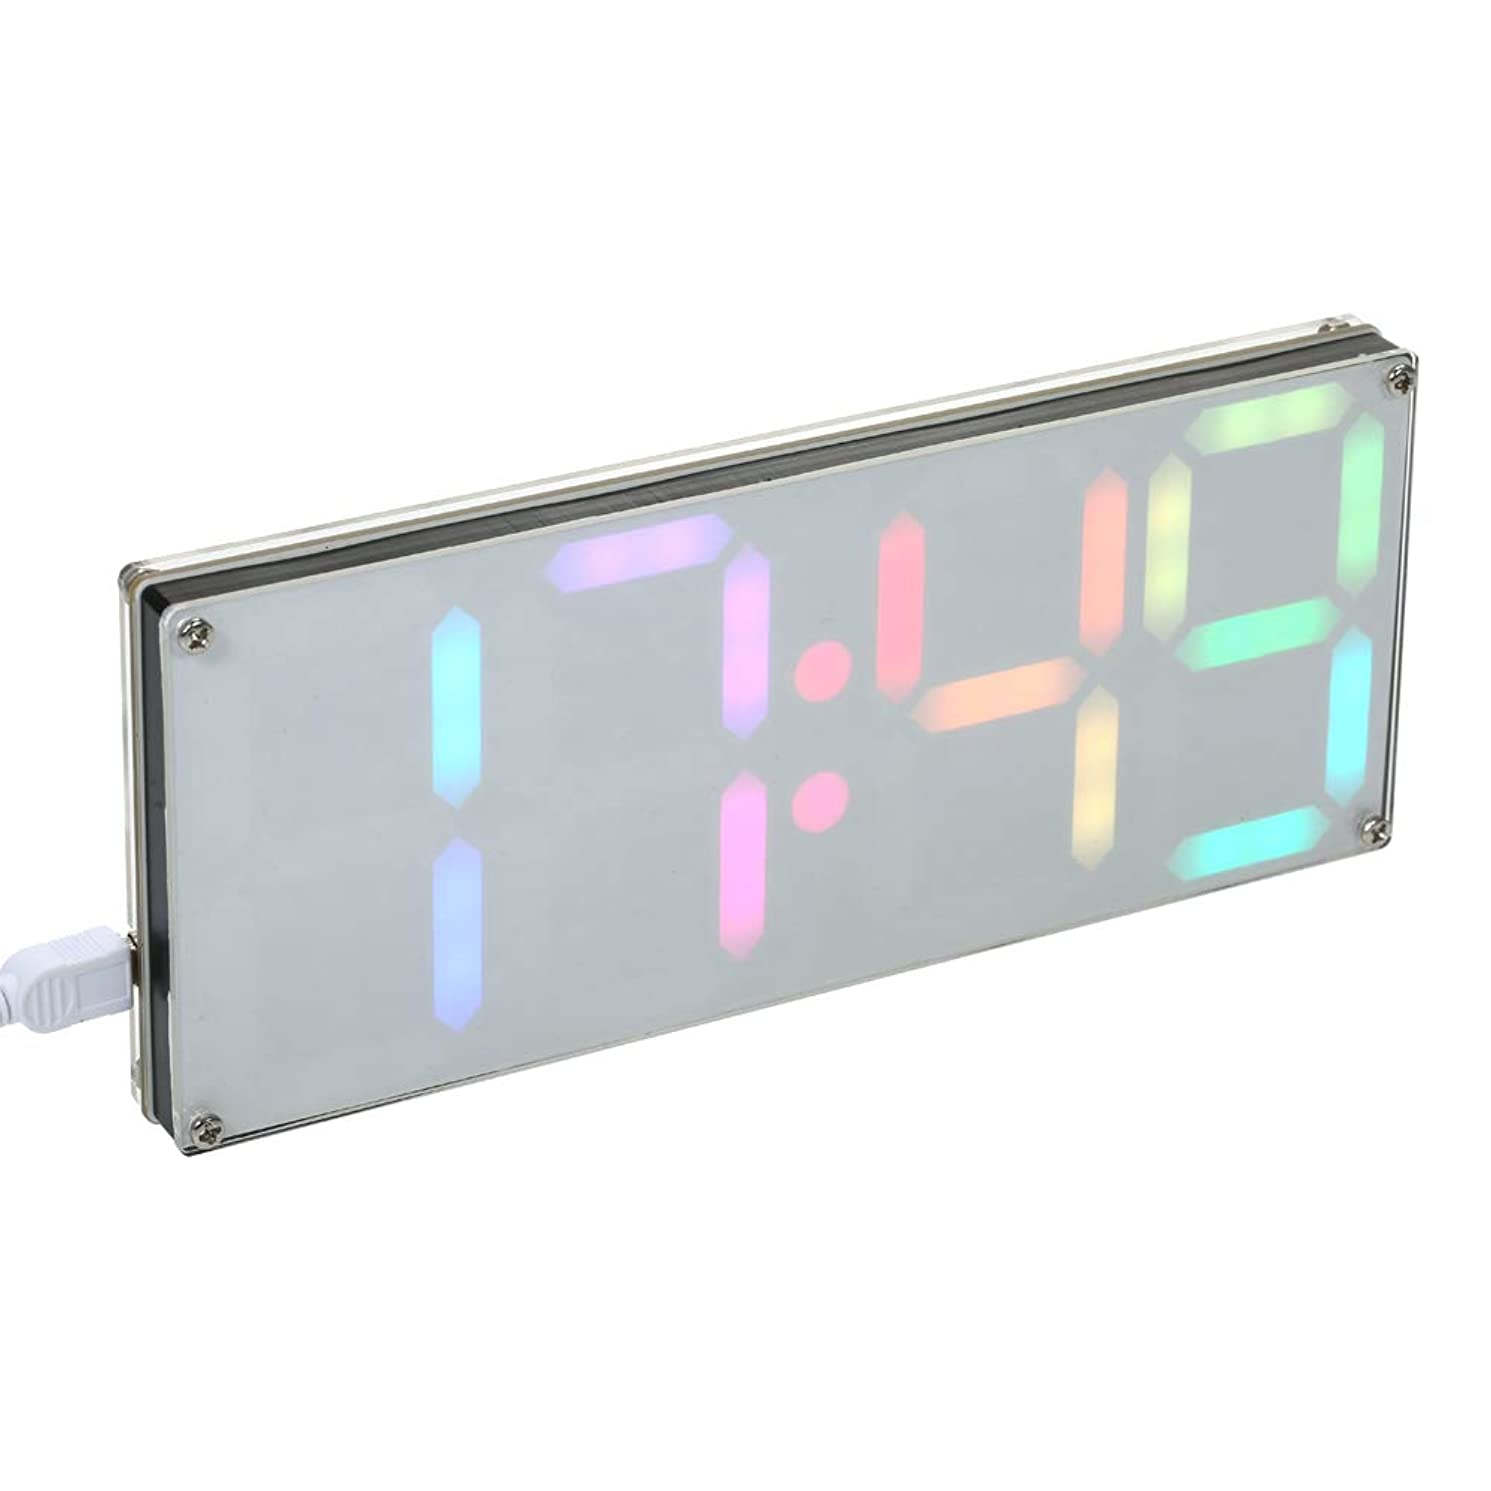 KKmoon DS3231 DIY 4-digit Digital LED Clock Kit with Rainbow Colors and Transparent Case